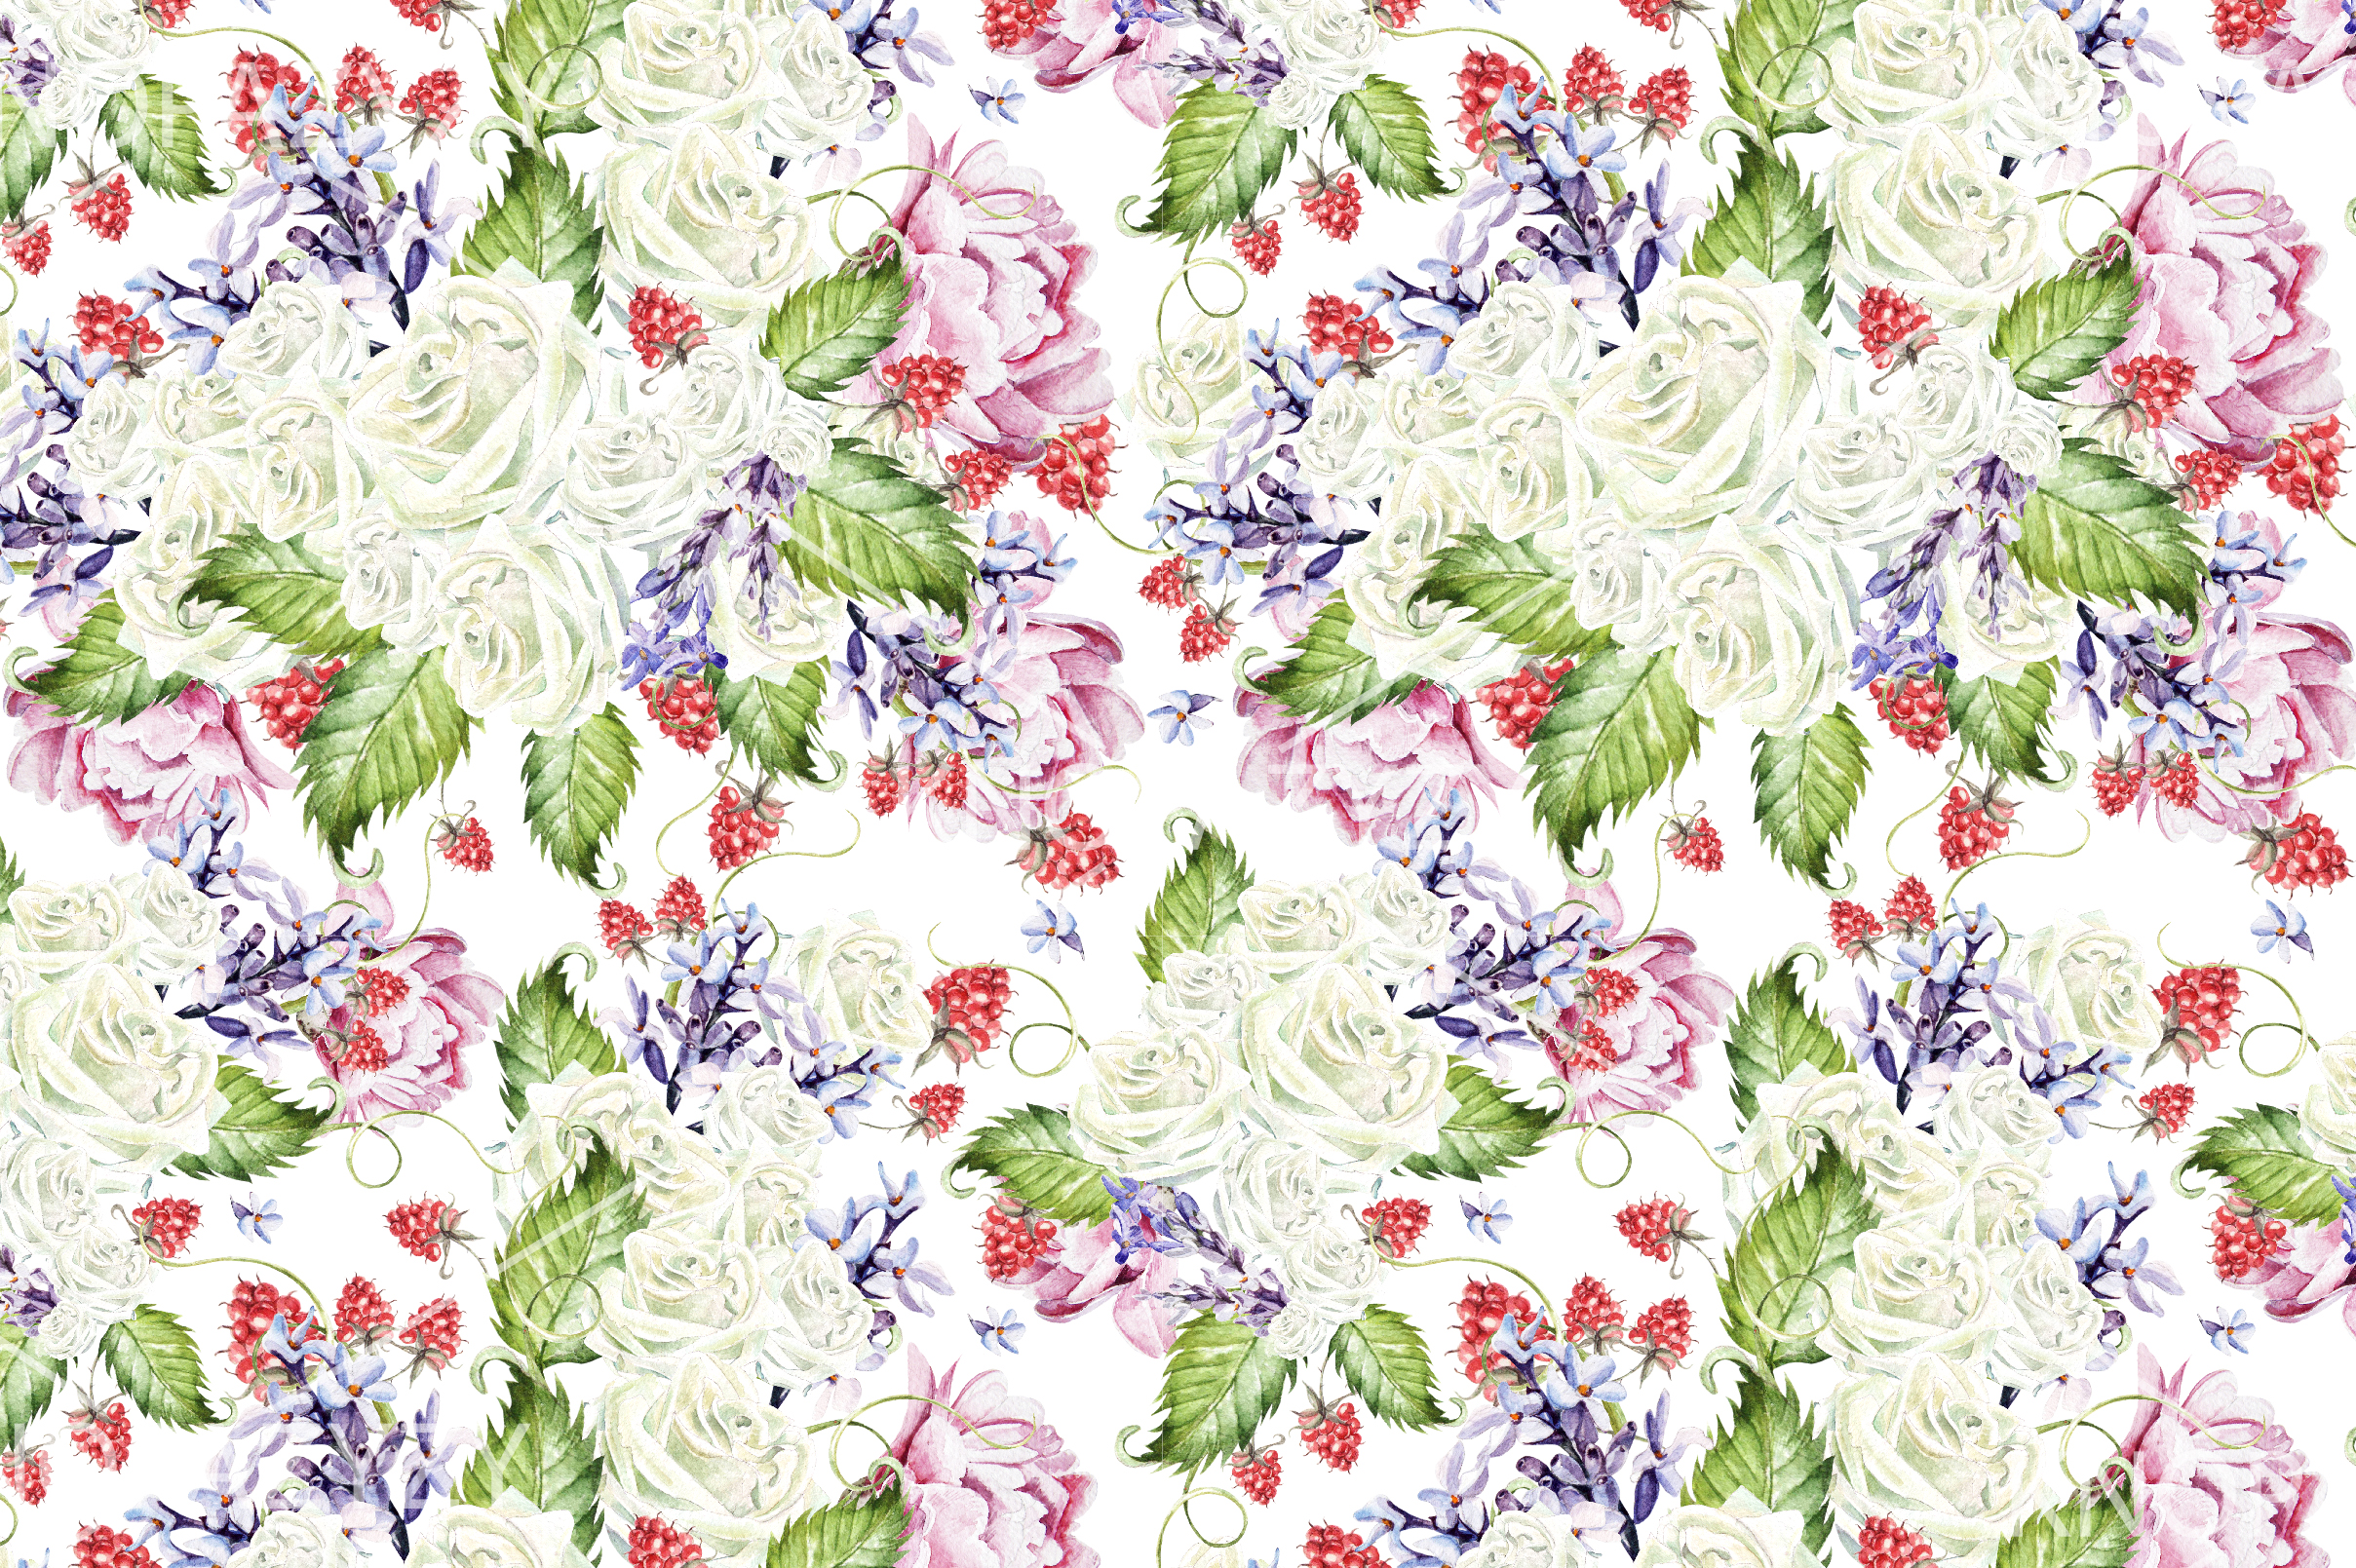 15 Hand Drawn Watercolor PATTERNS example image 5